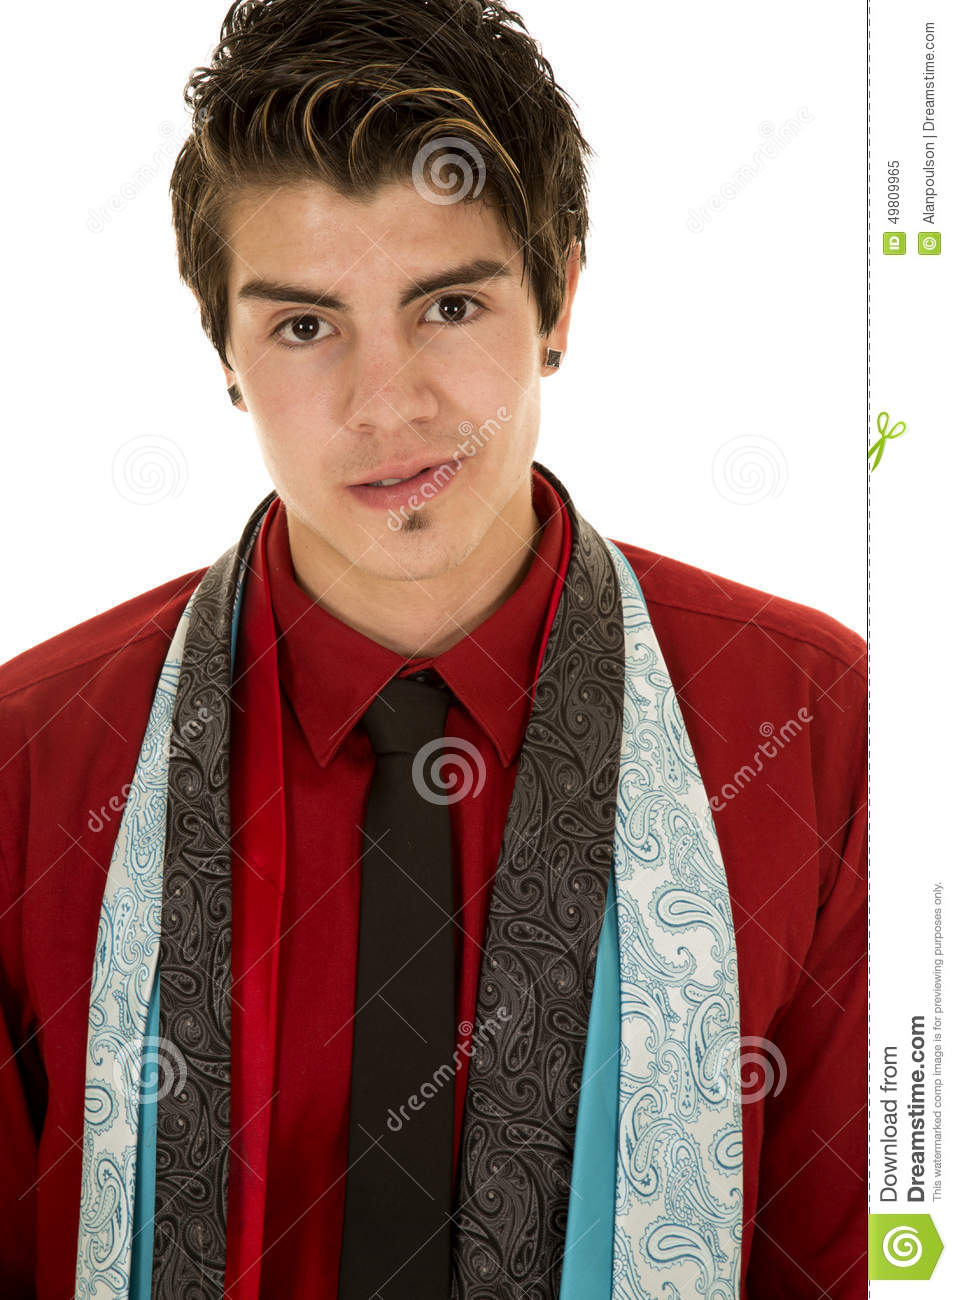 Image result for wearing lots of ties